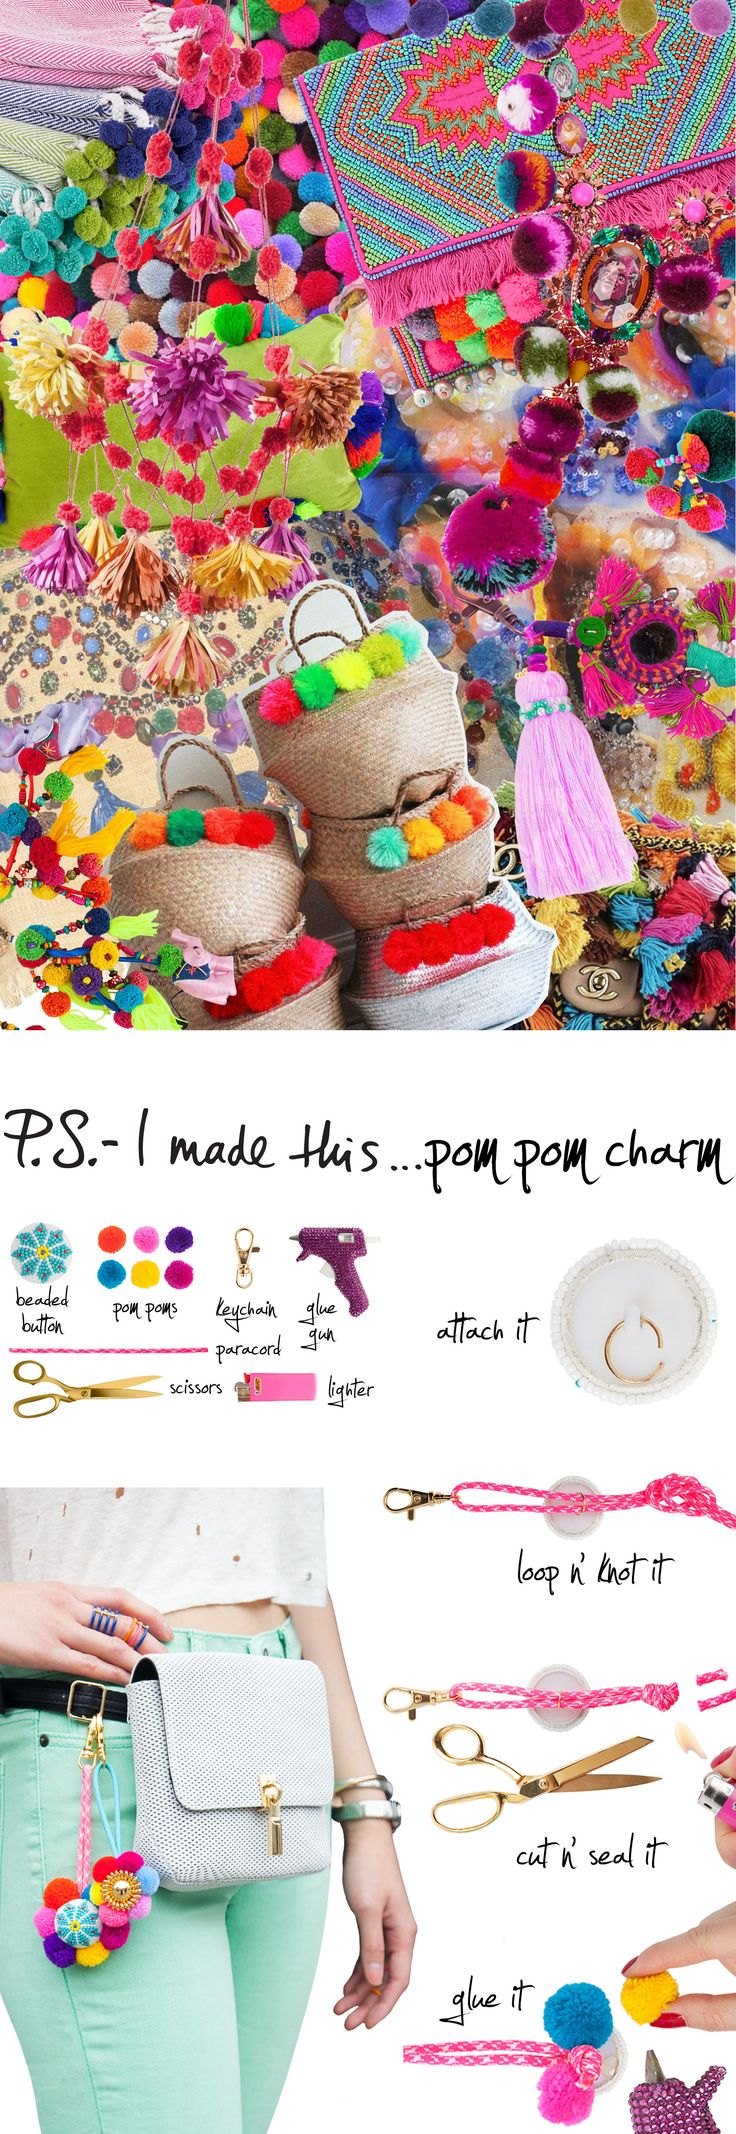 P.S.- I made this...Pom Pom Charm #PSIMADETHIS #DIY